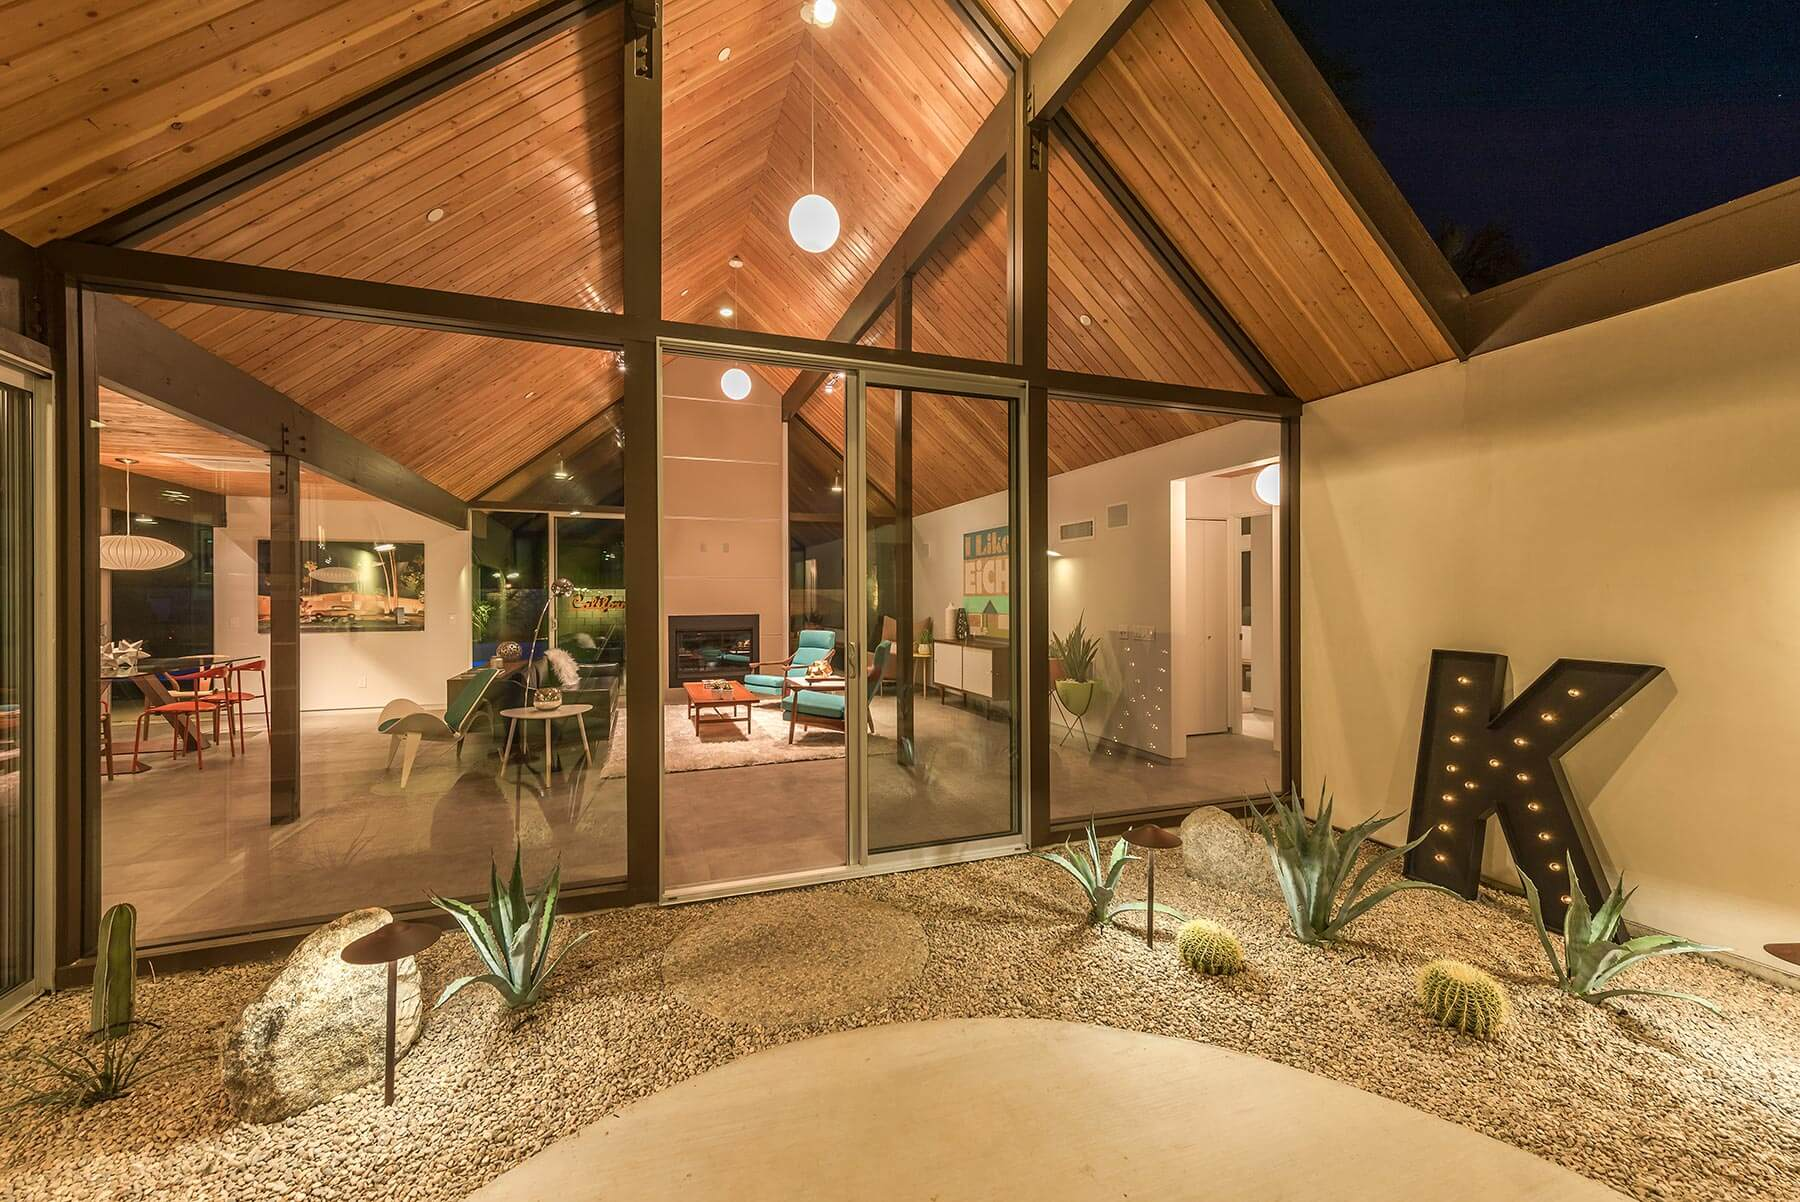 The Desert Eichler 2 Atrium at twighlight